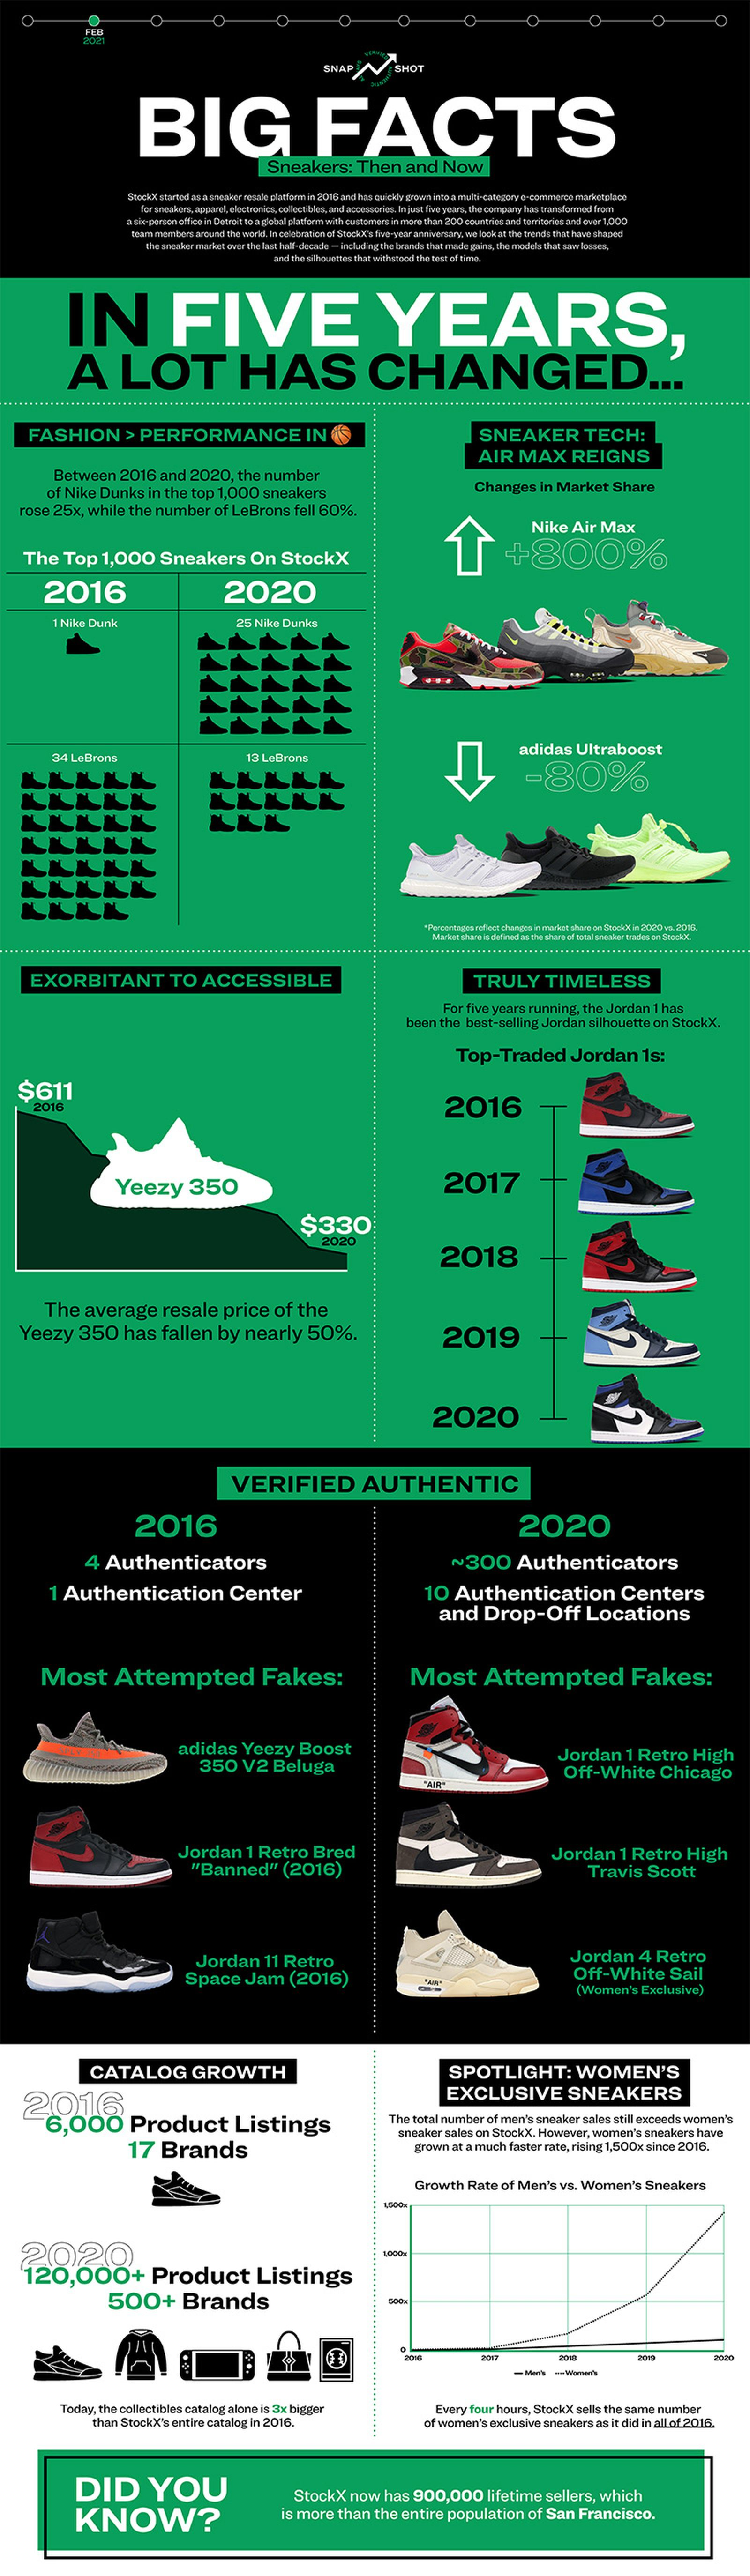 stockx-most-faked-sneakers-2016-2020-01